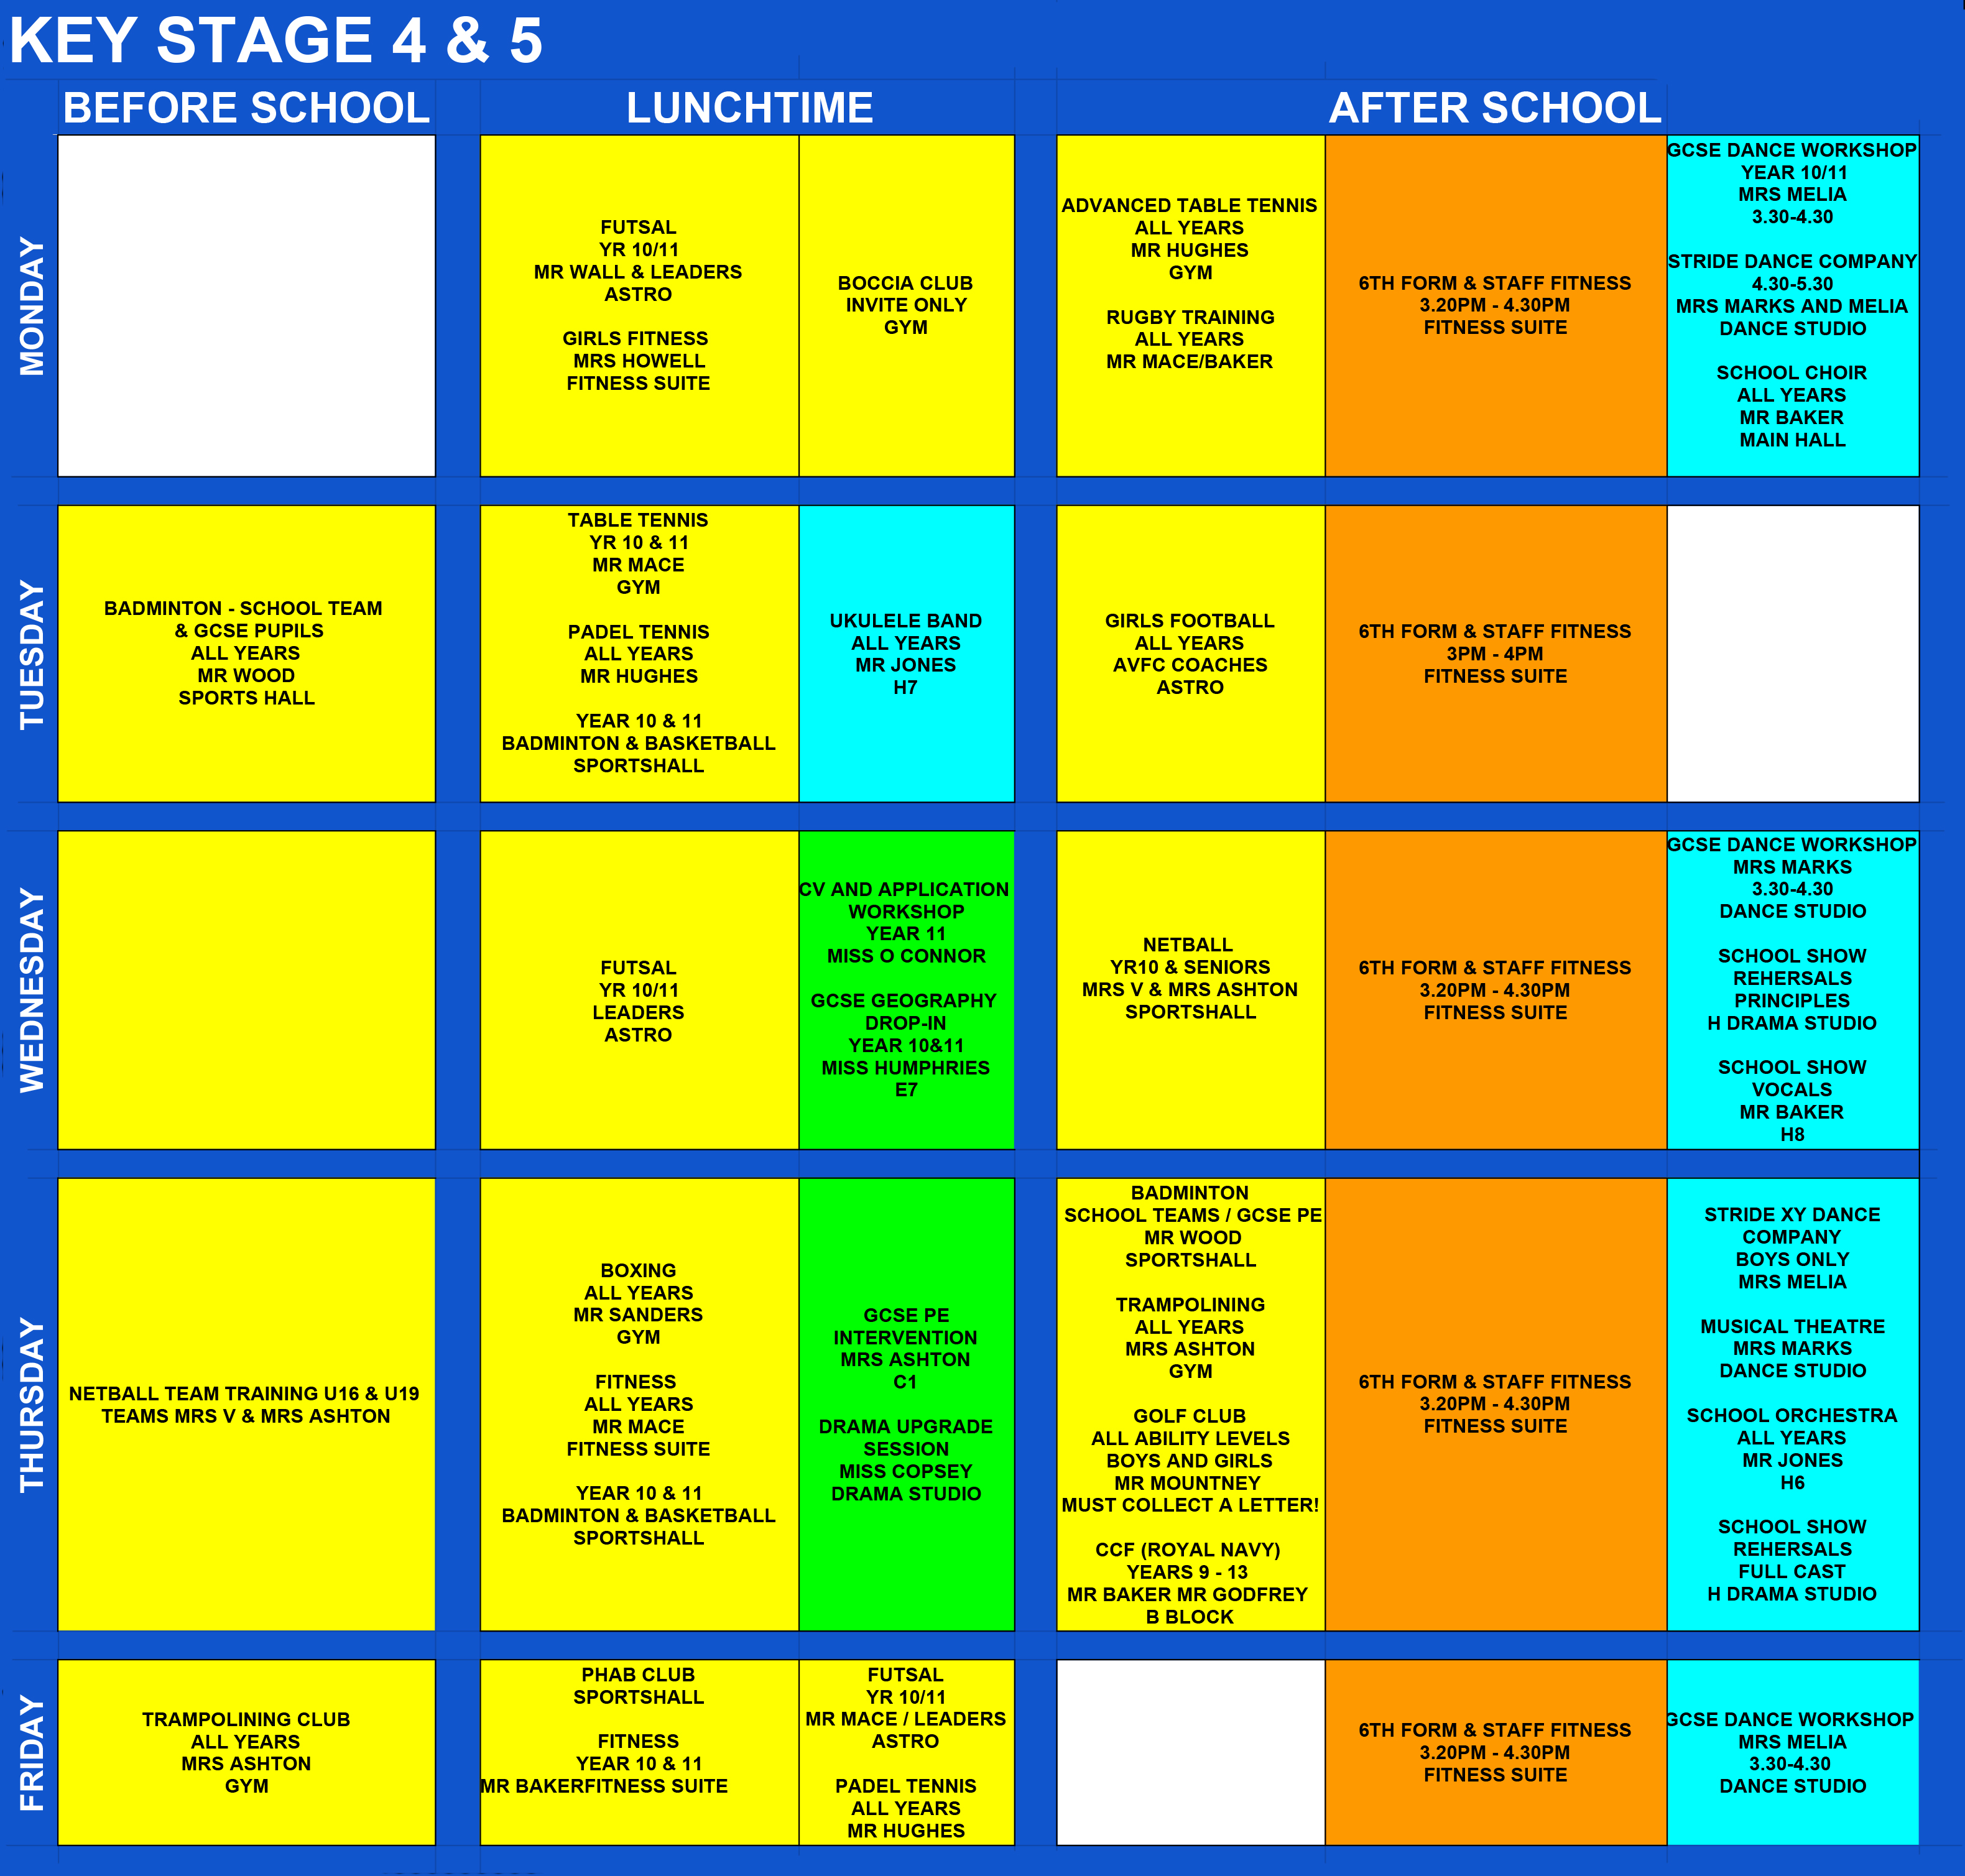 KEY STAGE 4 & 5 EXTRA CURRICULAR TIMETABLE